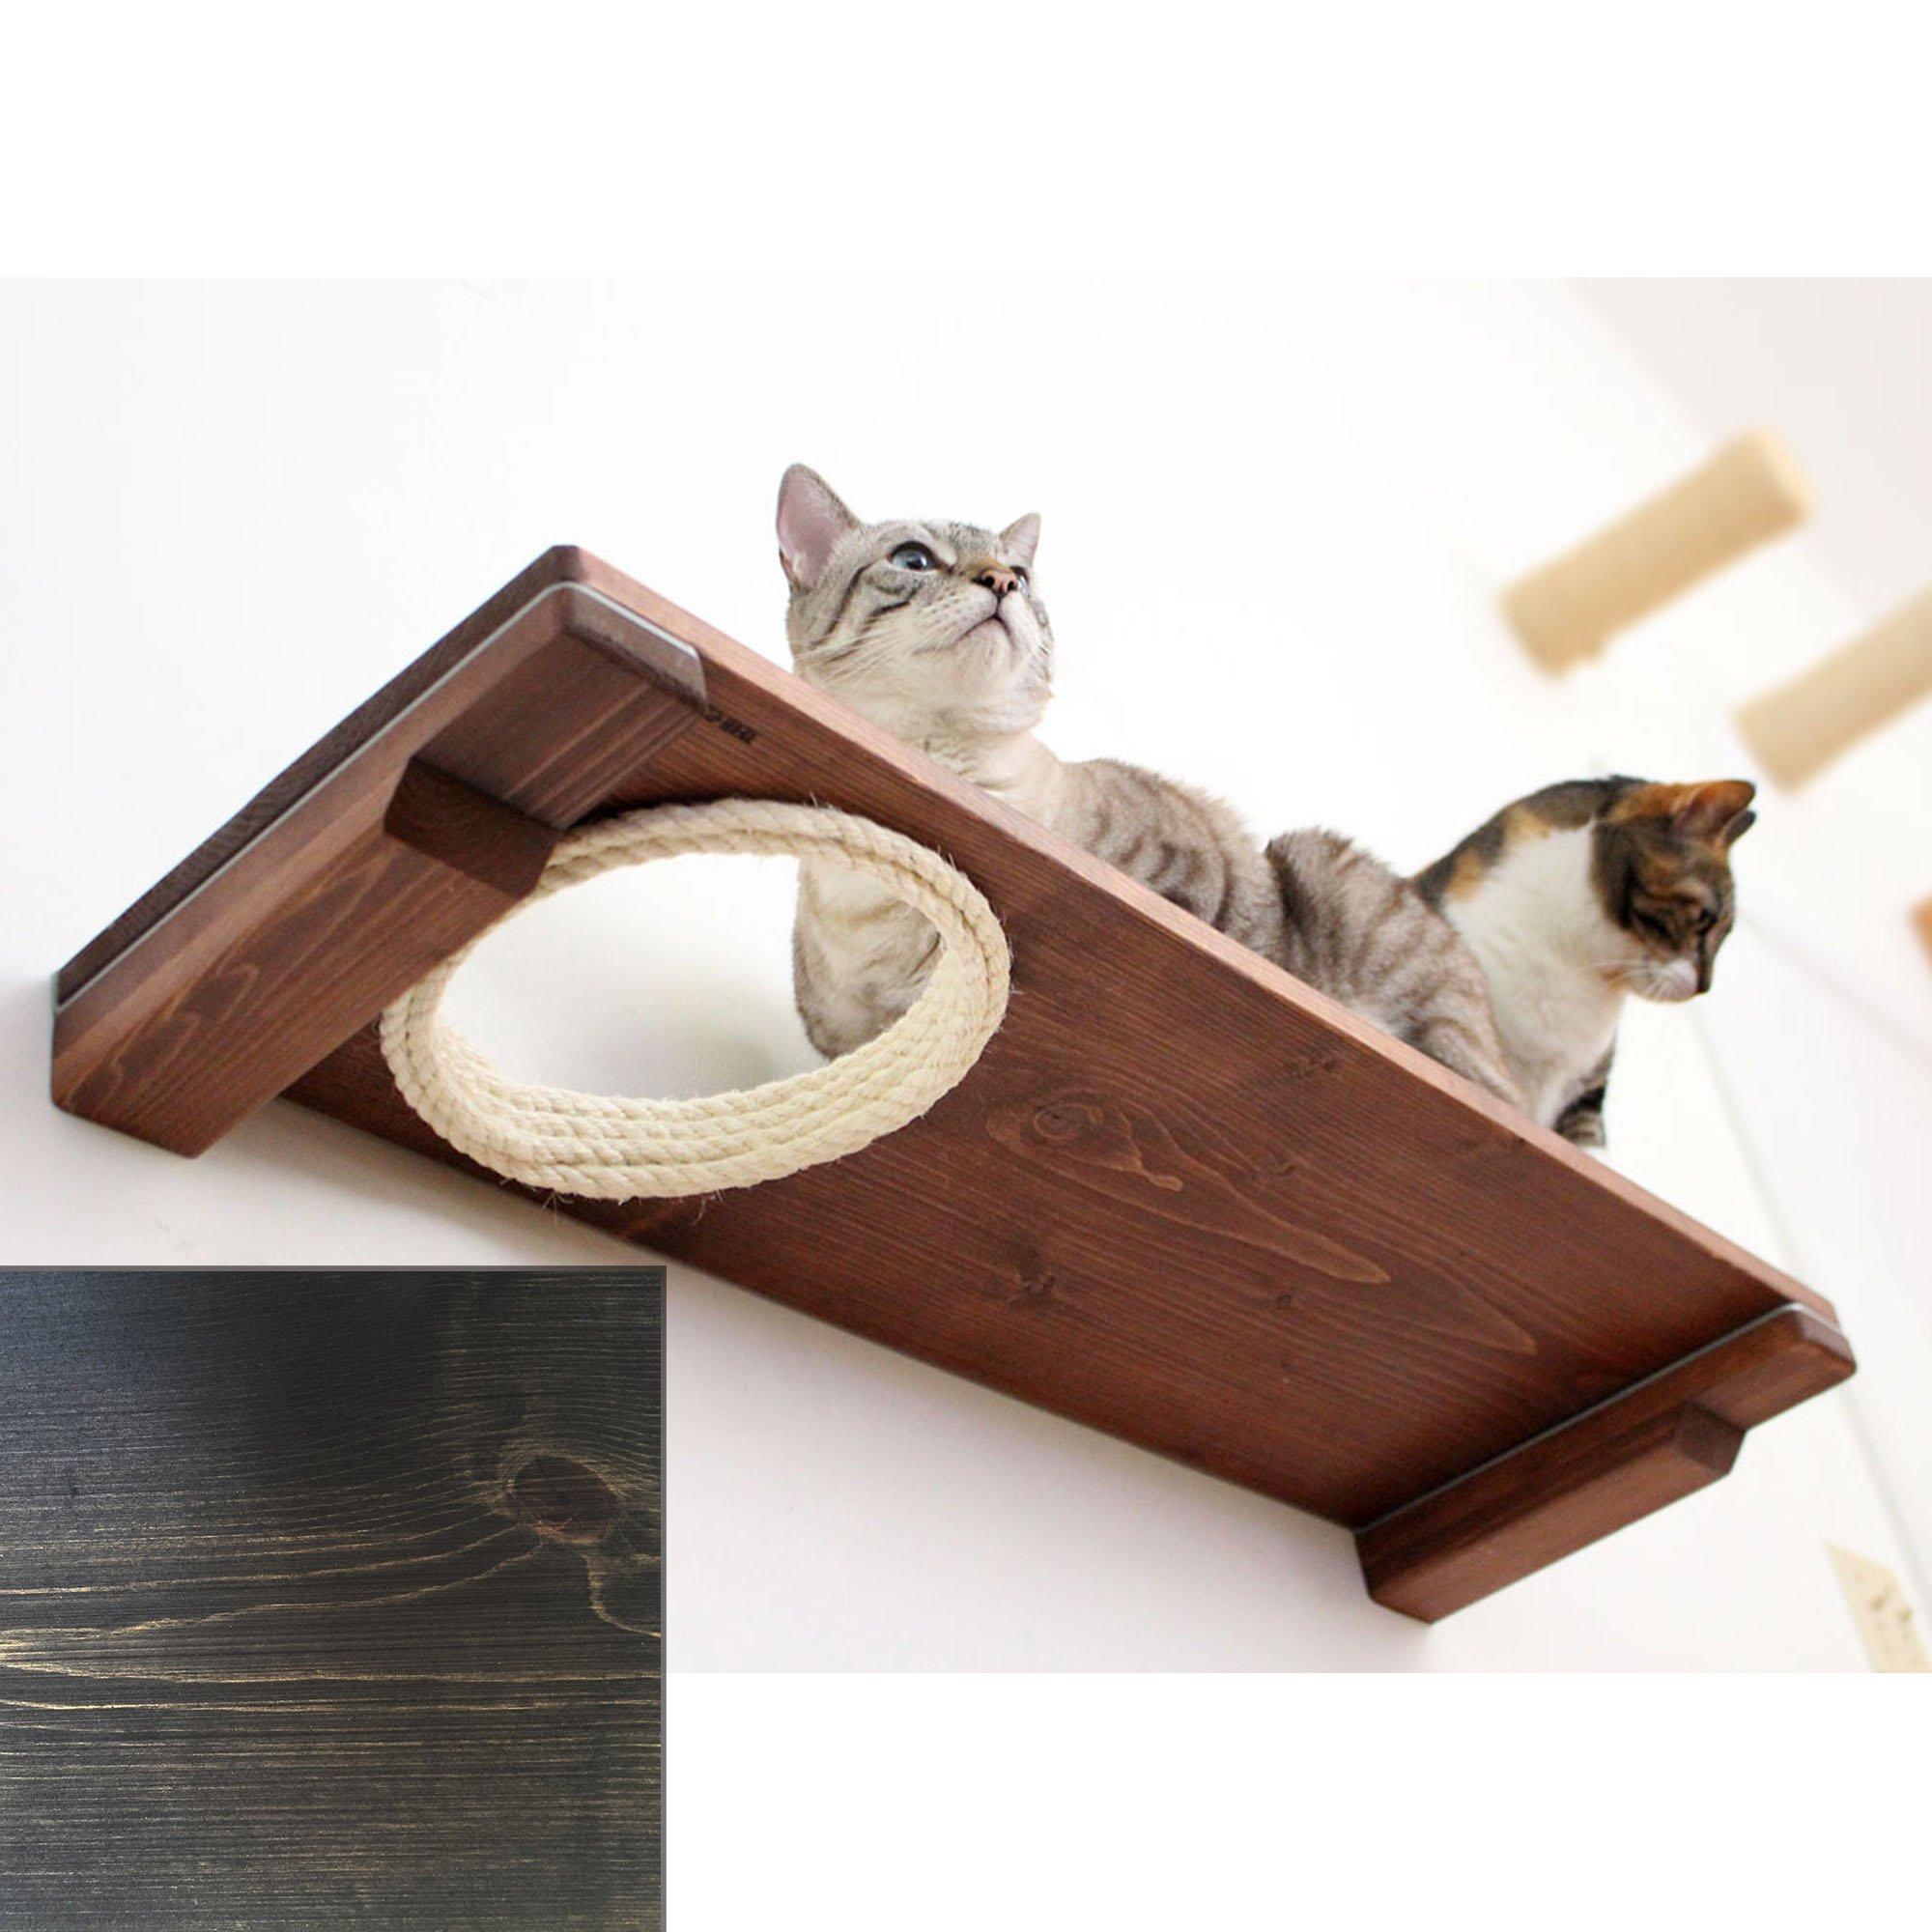 """Catastrophicreations The Cat Mod 34"""" Escape Hatch Shelf For Cats In Onyx, 34 In W X 3 In H, 8 Lb"""